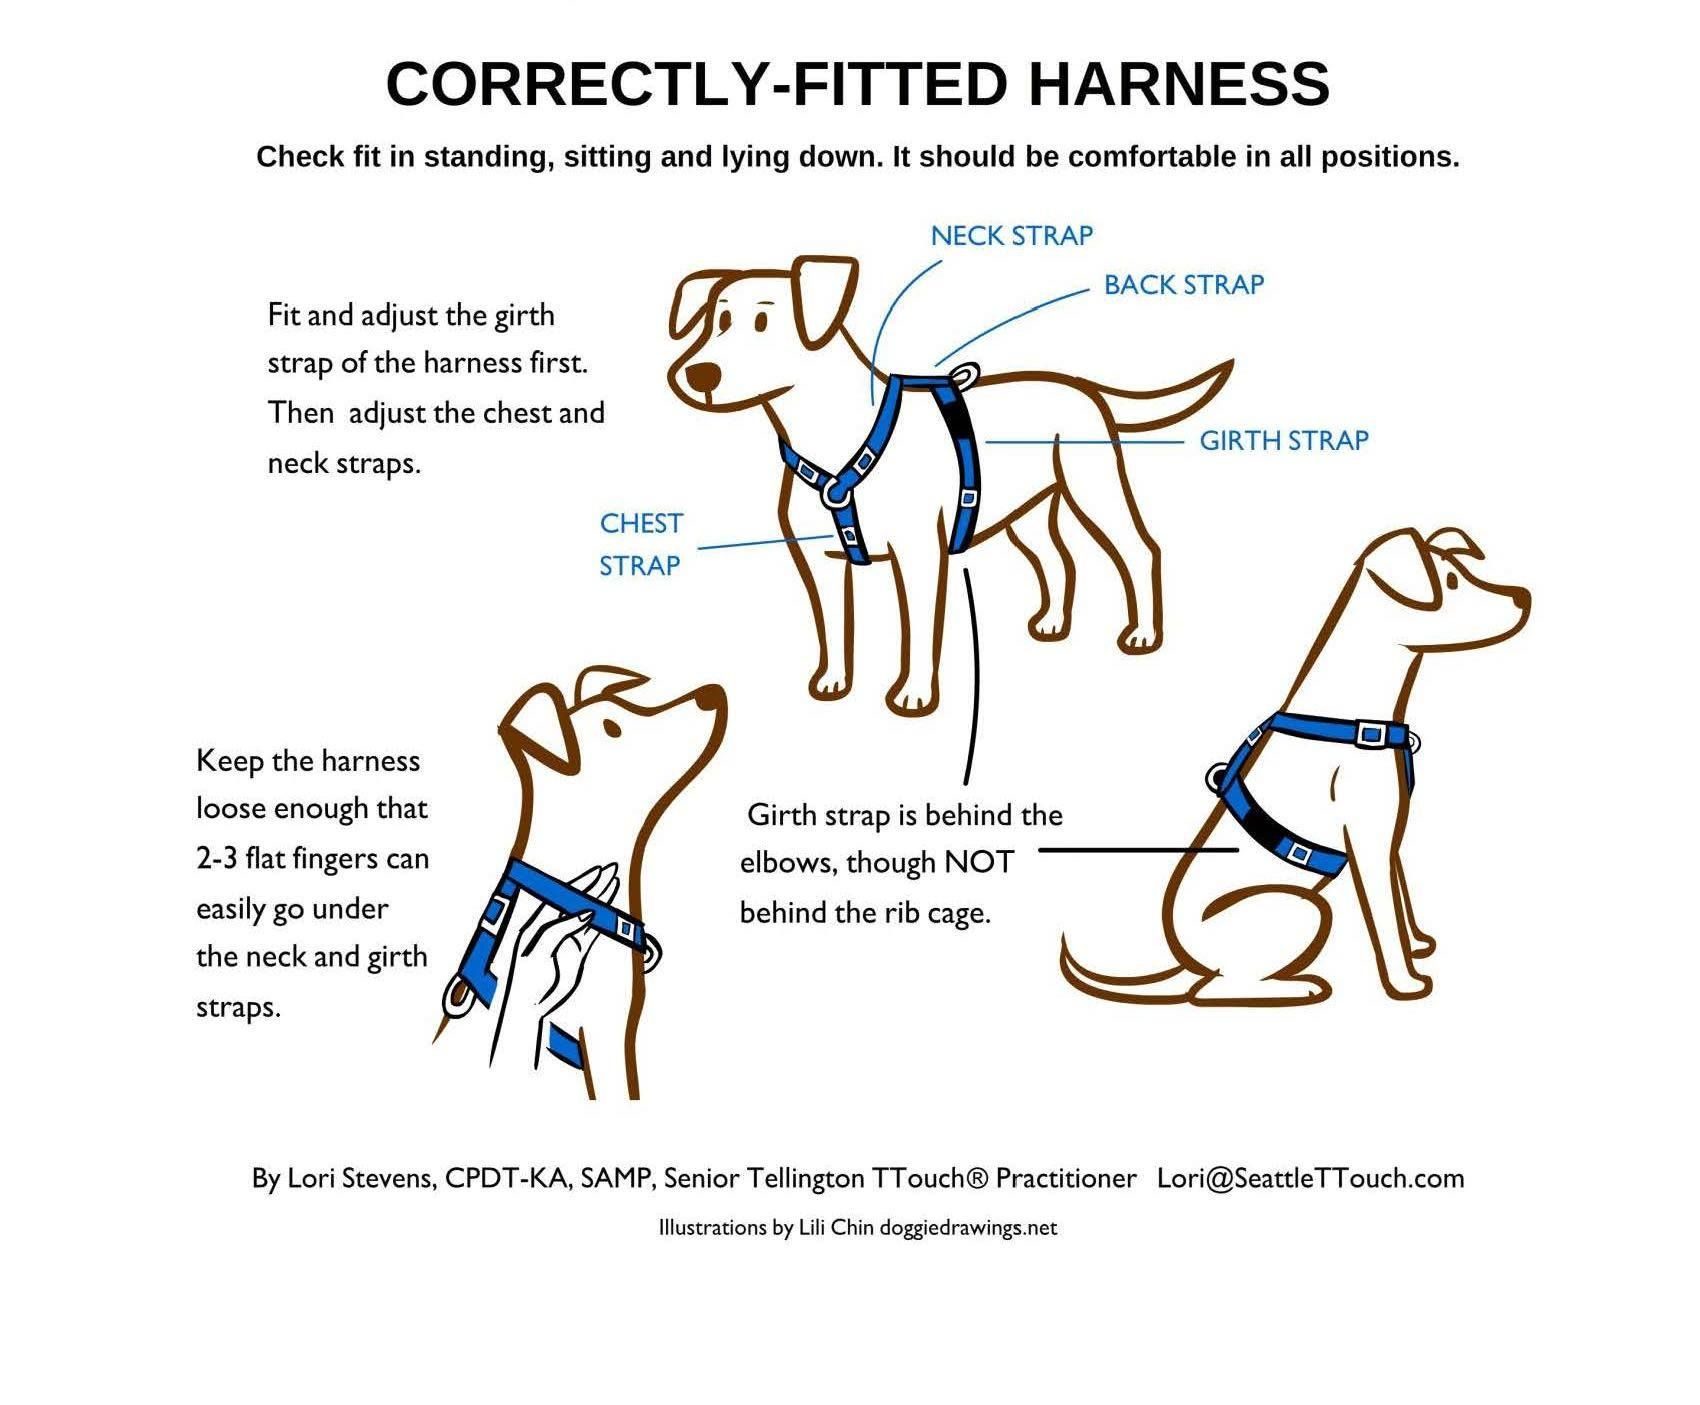 Pin By Pamela Wofford On Dog Supplies Dog Safety Dog Supplies